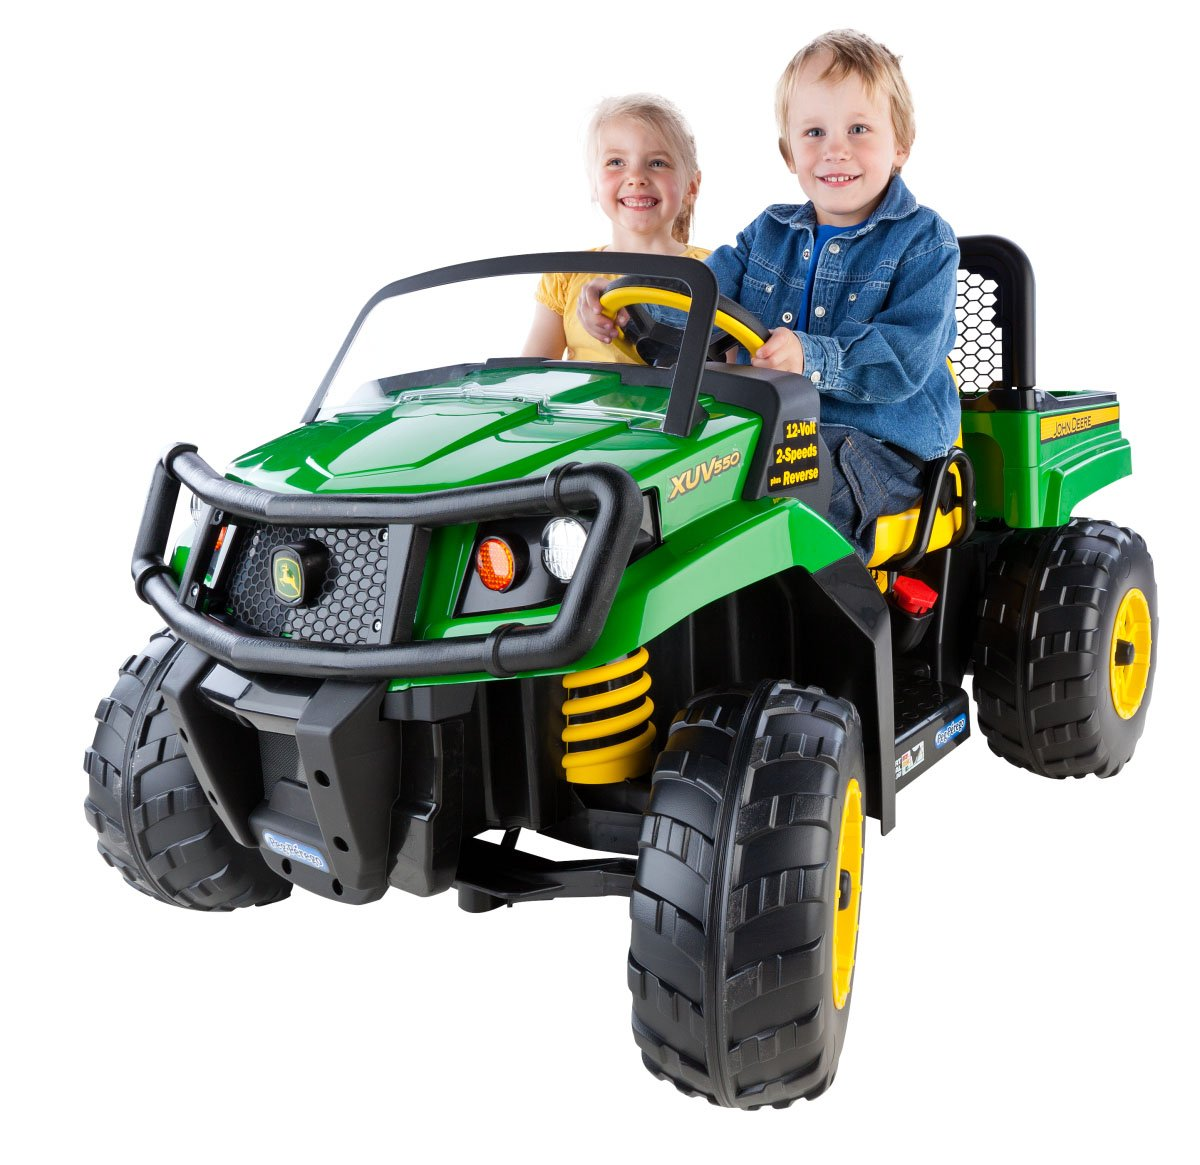 Amazon Com Peg Perego John Deere Gator Xuv Green Toys Games